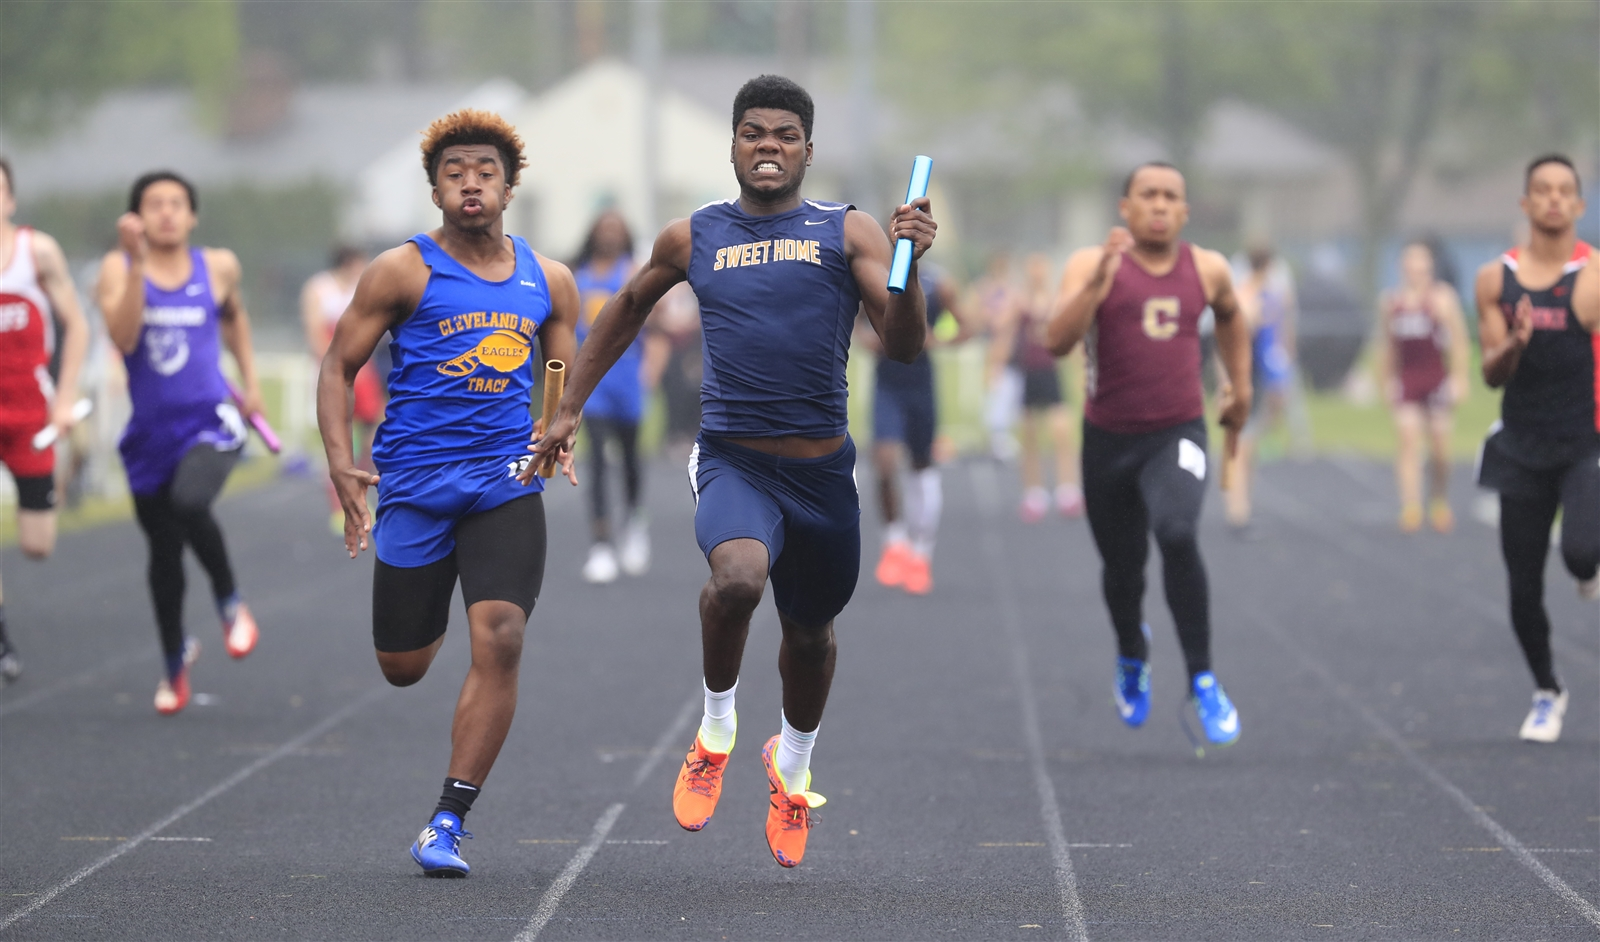 David Campbell from Sweet Home runs the last leg to victory in heat 1 of the 4x100 relay at the ECIC track championships at Hamburg high school on Friday, May 26, 2017.